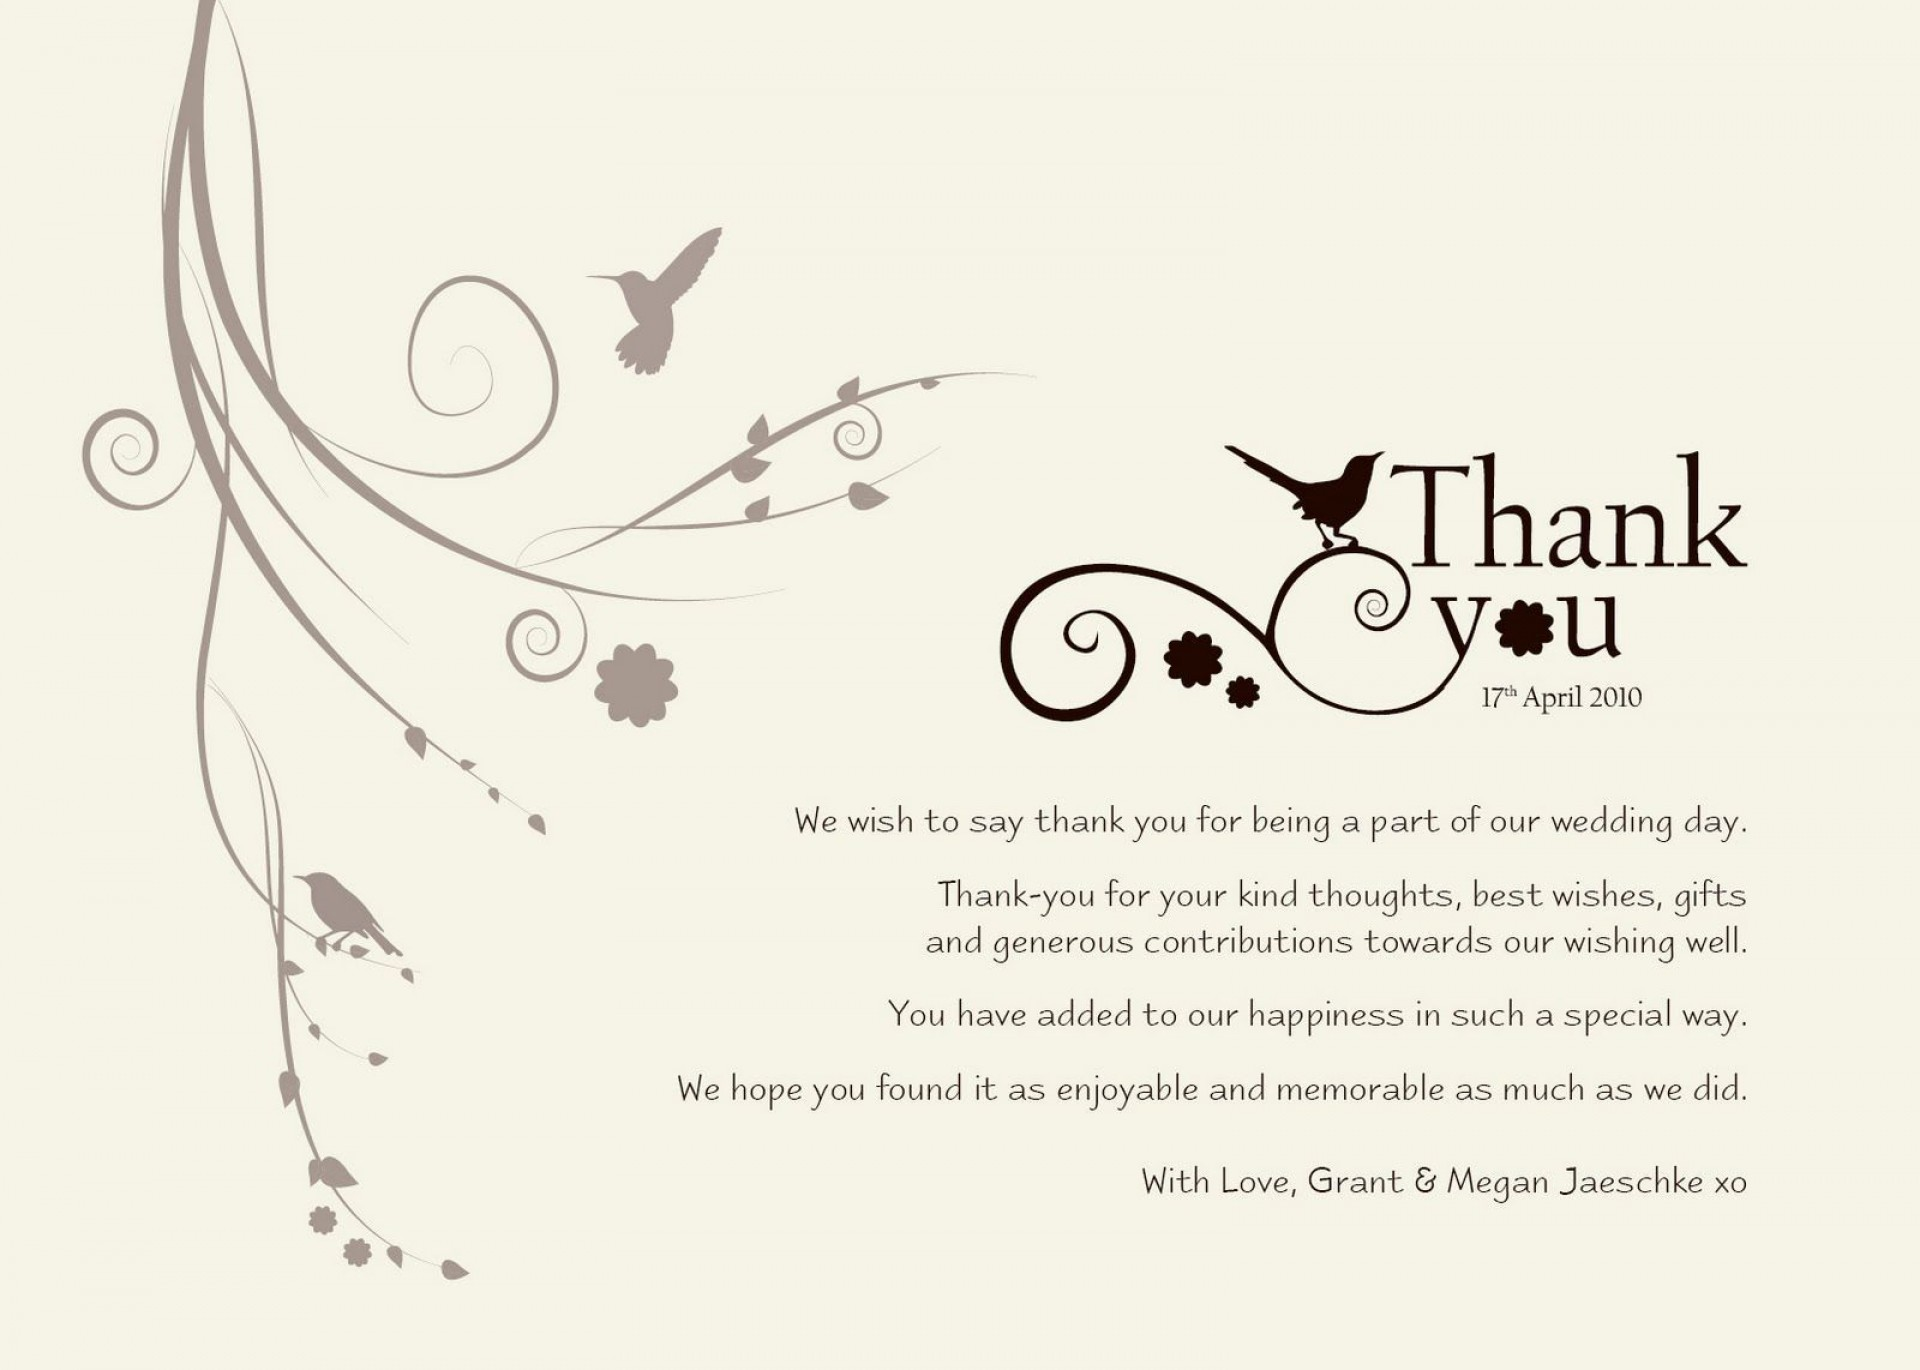 002 Marvelou Thank You Note Template Wedding High Def  Card Etsy Wording1920